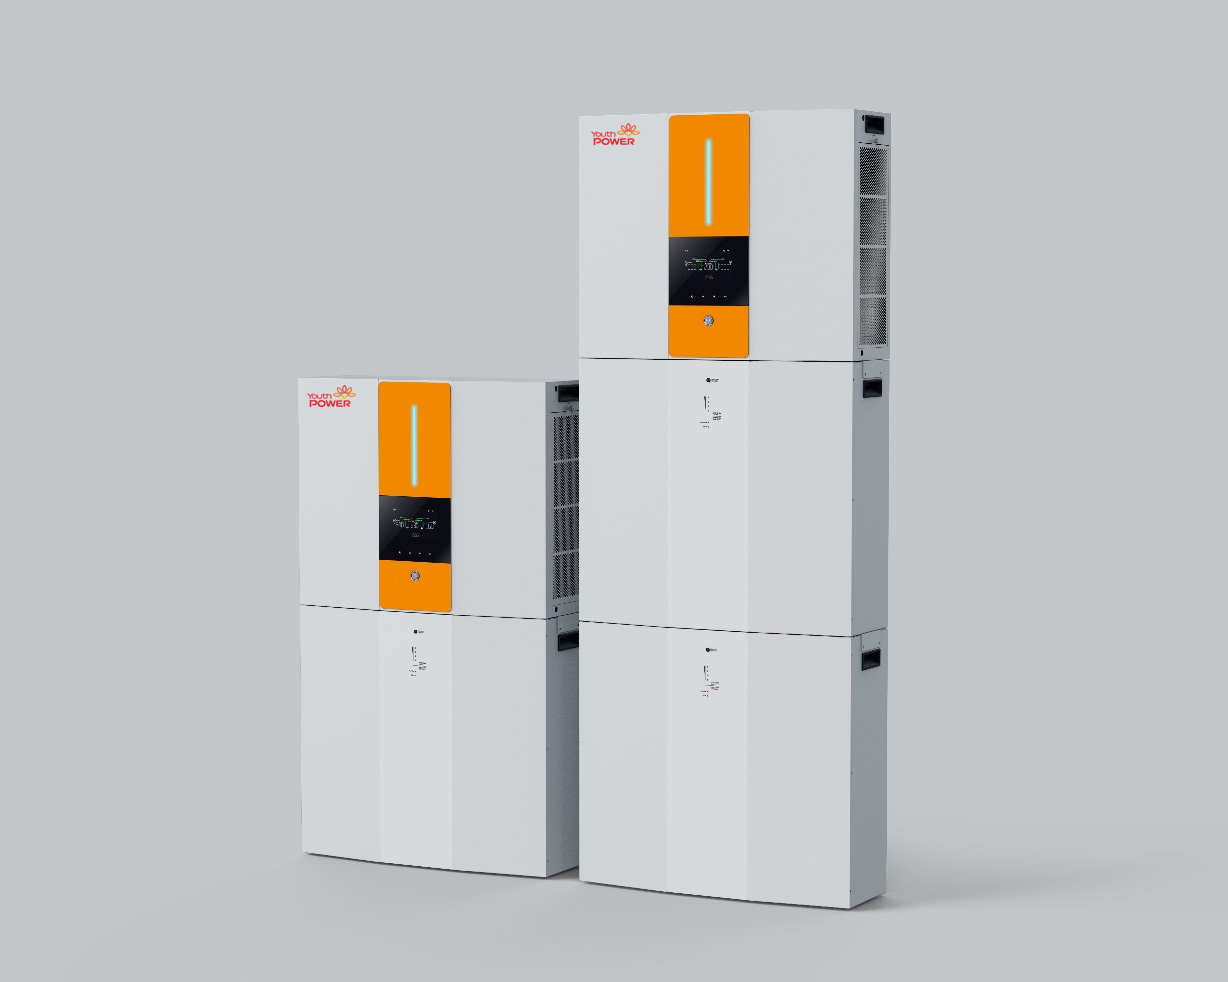 YOUTHPOWER SMART ESS POWER-5.5KW V02